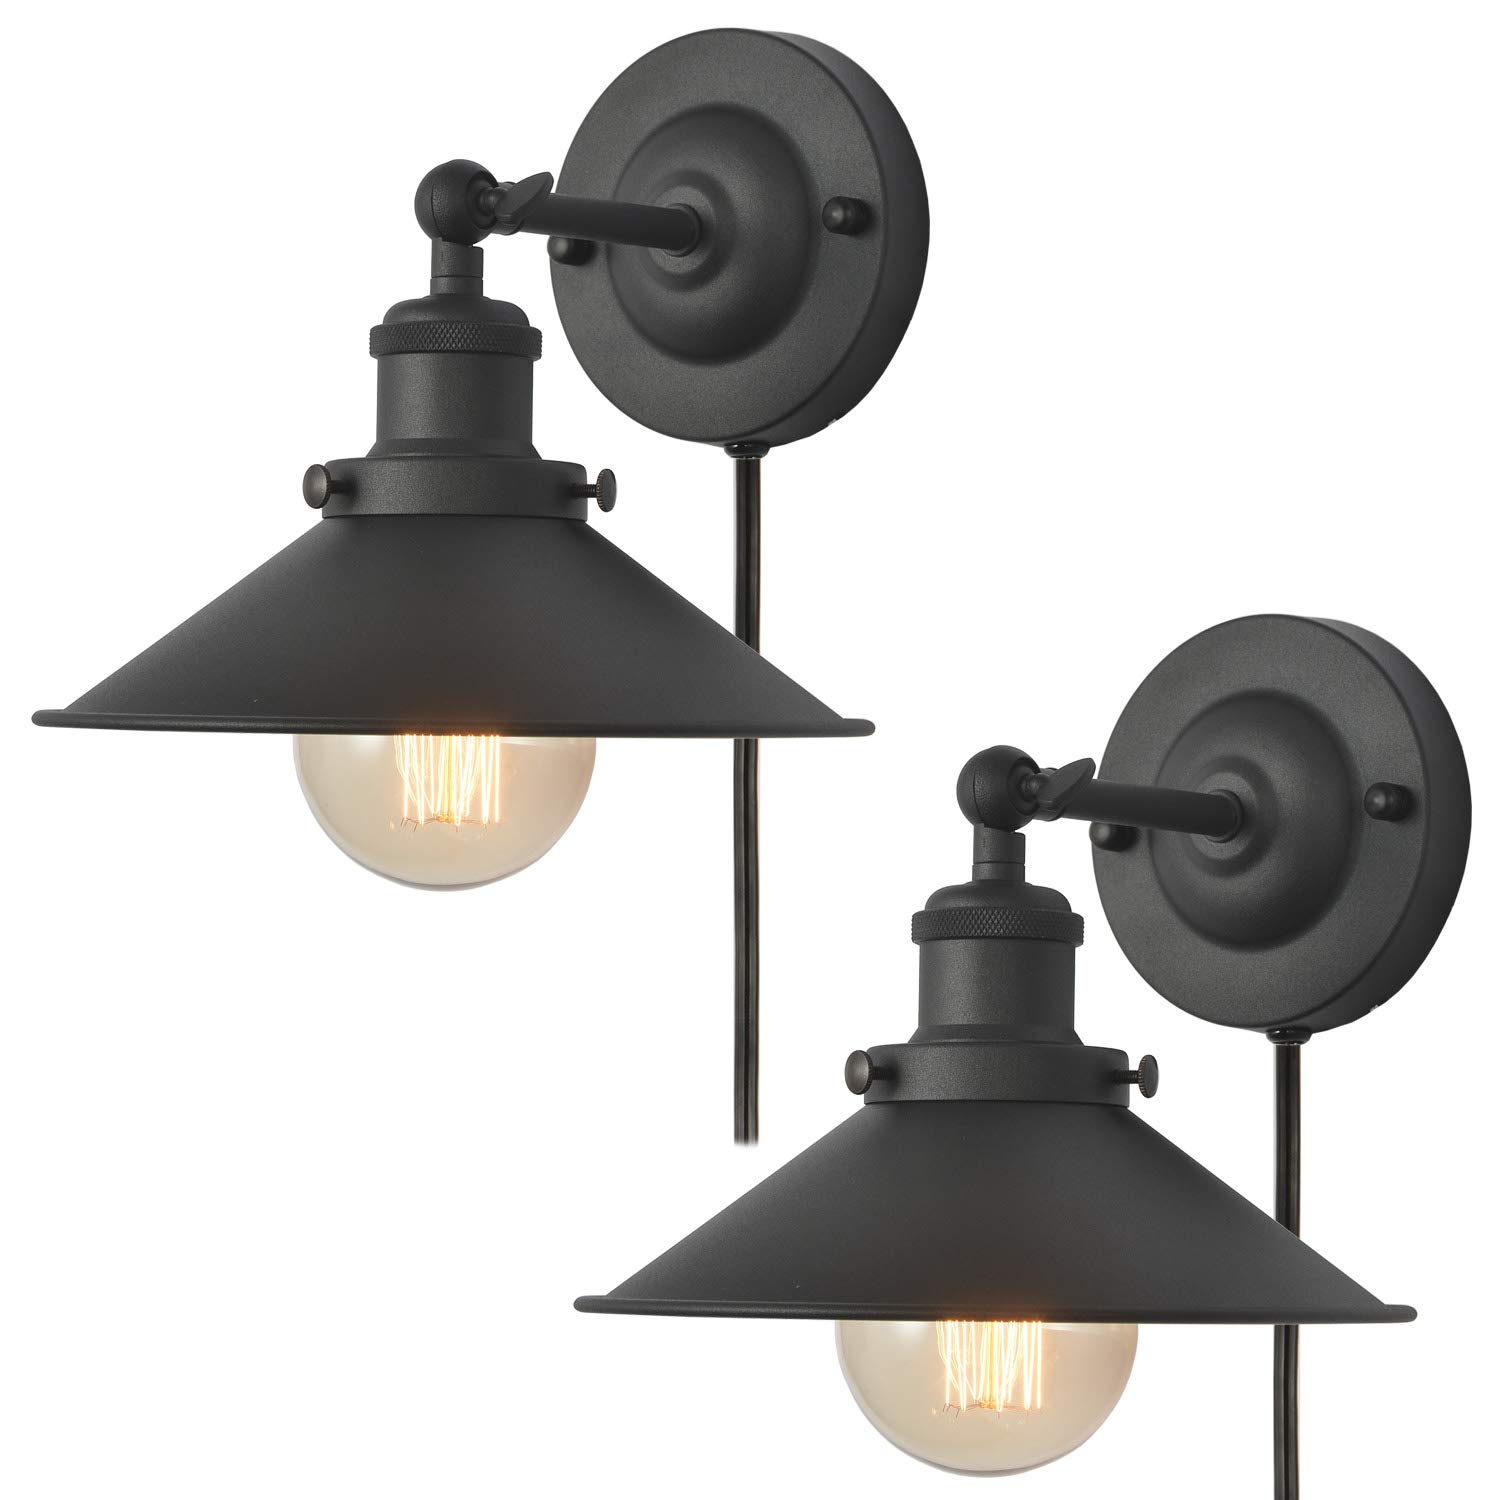 Plug-in Wall Sconces Lighting Fixture, AILIN Vintage Industrial Wall Light with Black Aged Steel Finished Metal Shade, 2-Pack